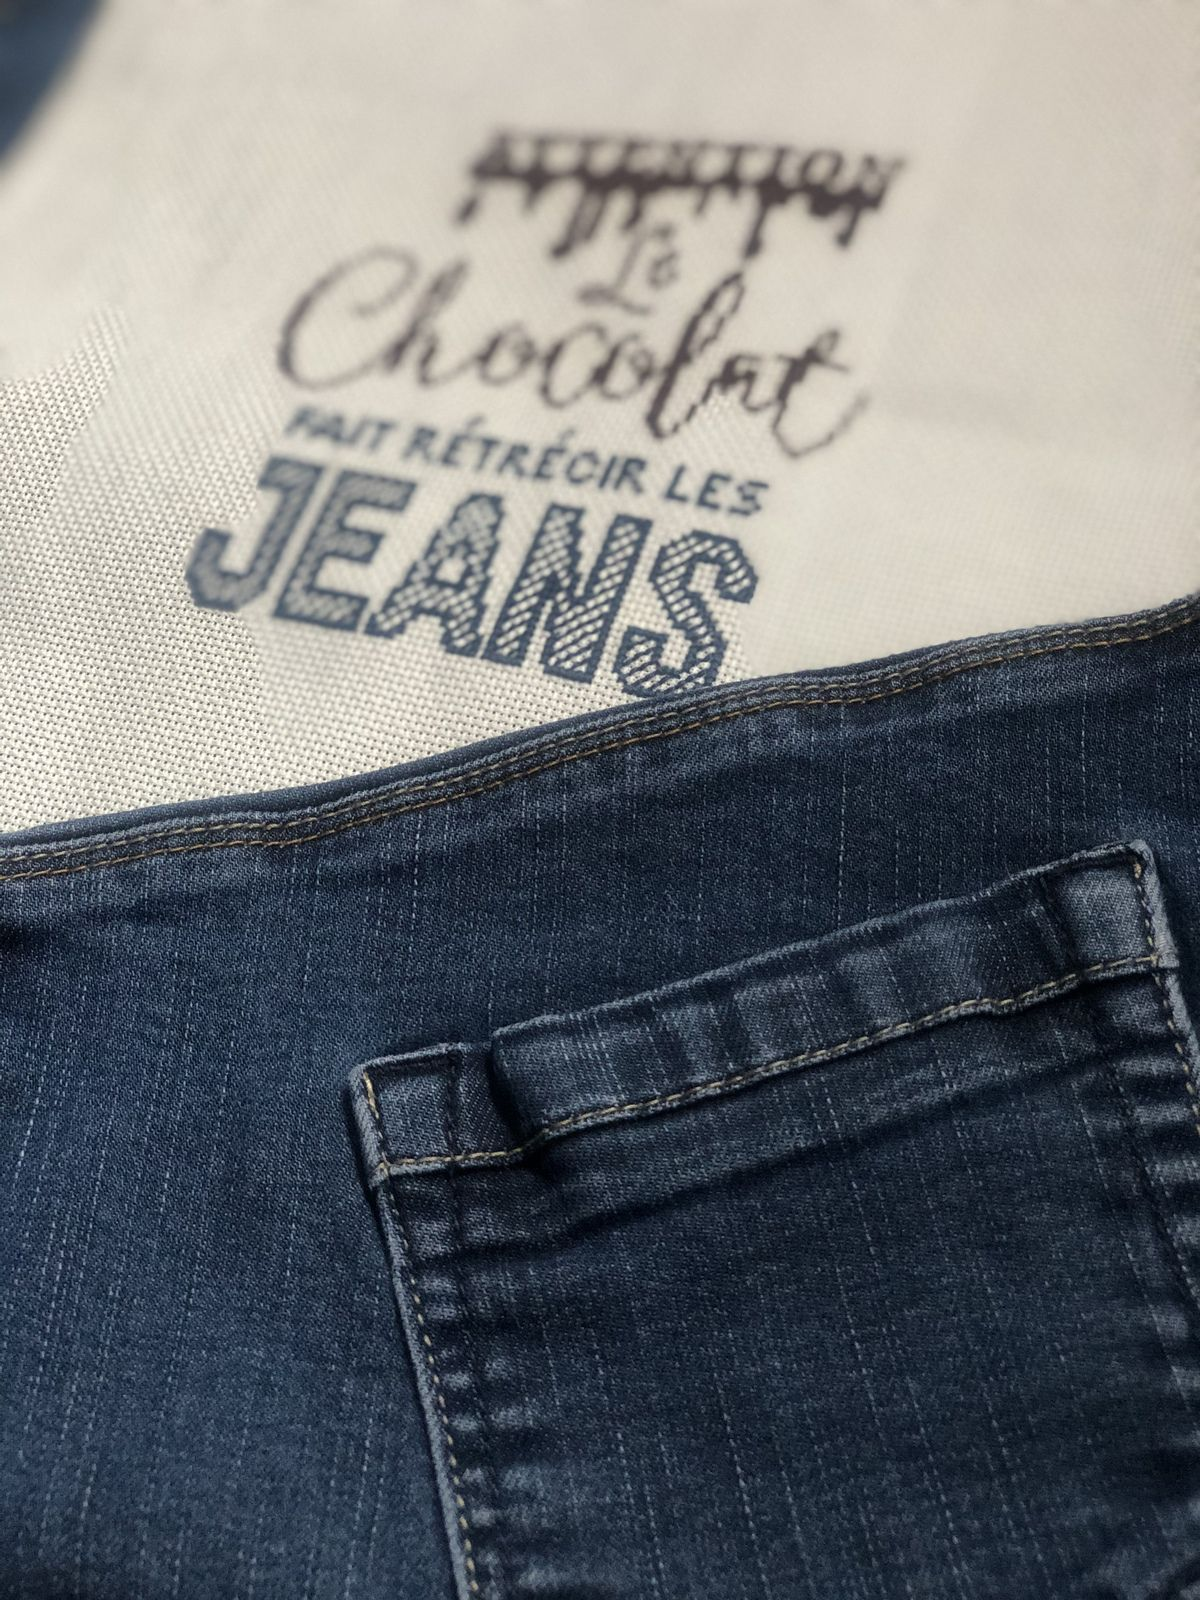 Attention le chocolat fait rétrecir les jeans